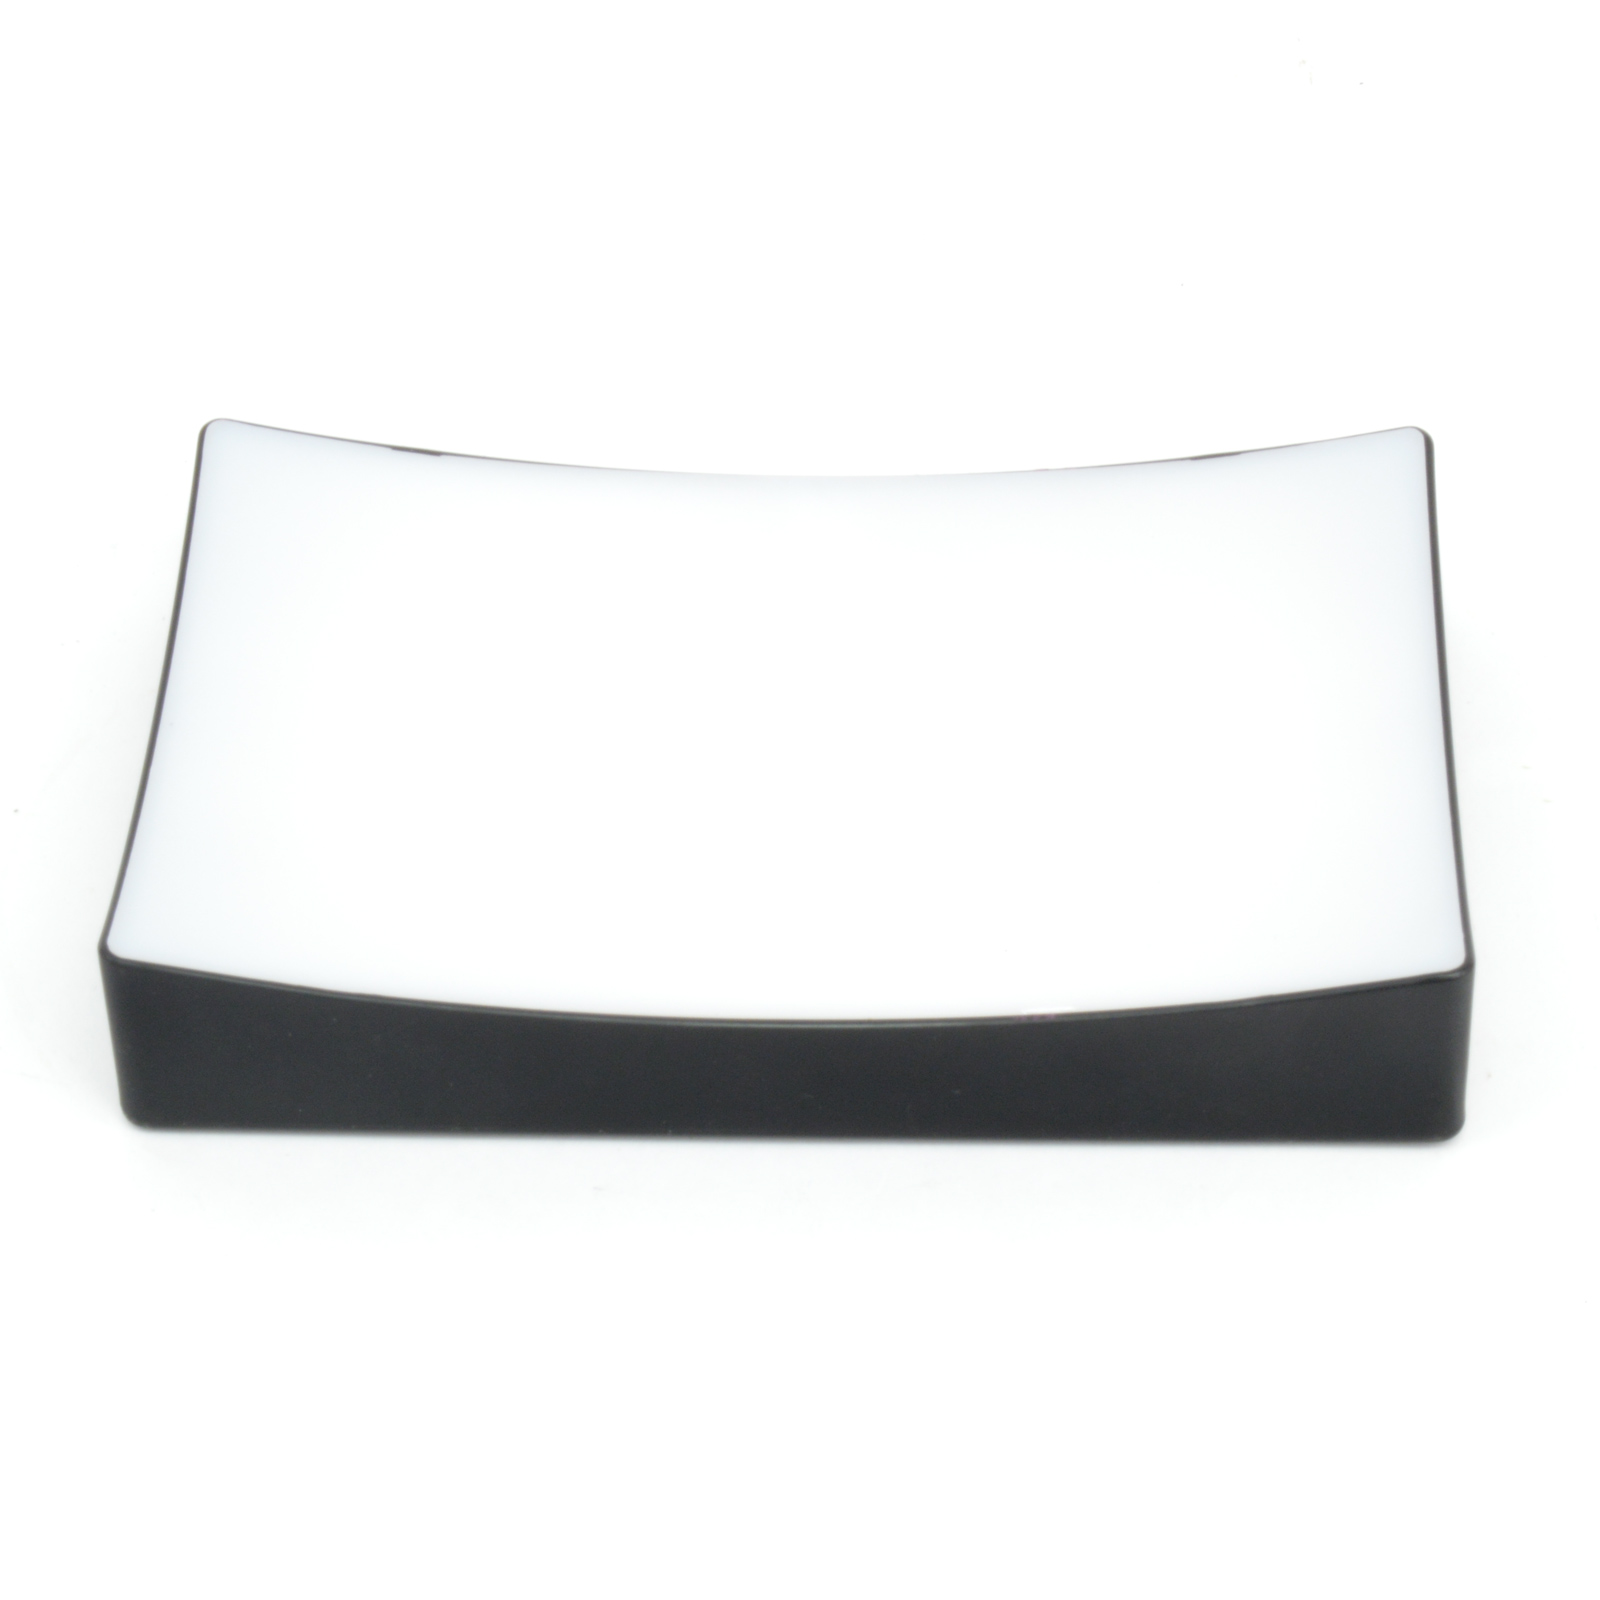 Bedside Lamp With Dimmer Switch Bedside Touch Lamp Tray Bedroom Lights Dimmer Blue Table